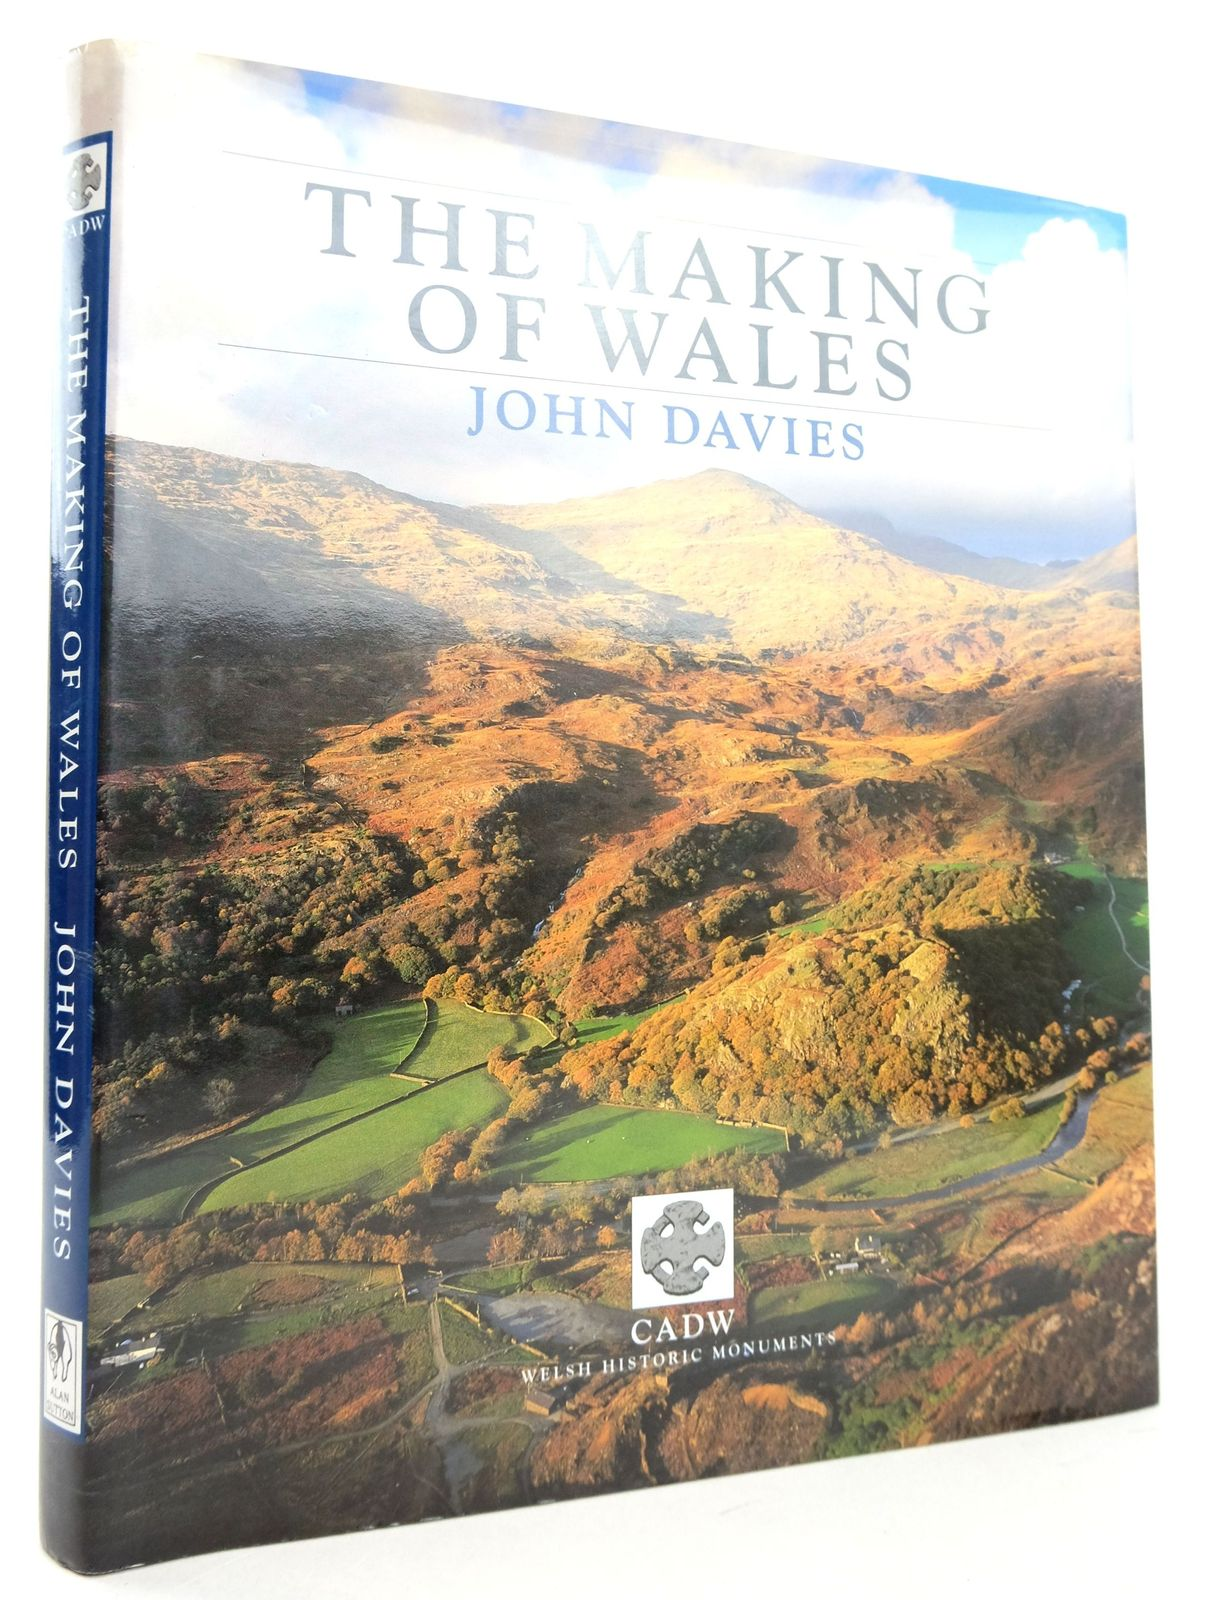 Photo of THE MAKING OF WALES written by Davies, John published by Alan Sutton (STOCK CODE: 1819345)  for sale by Stella & Rose's Books